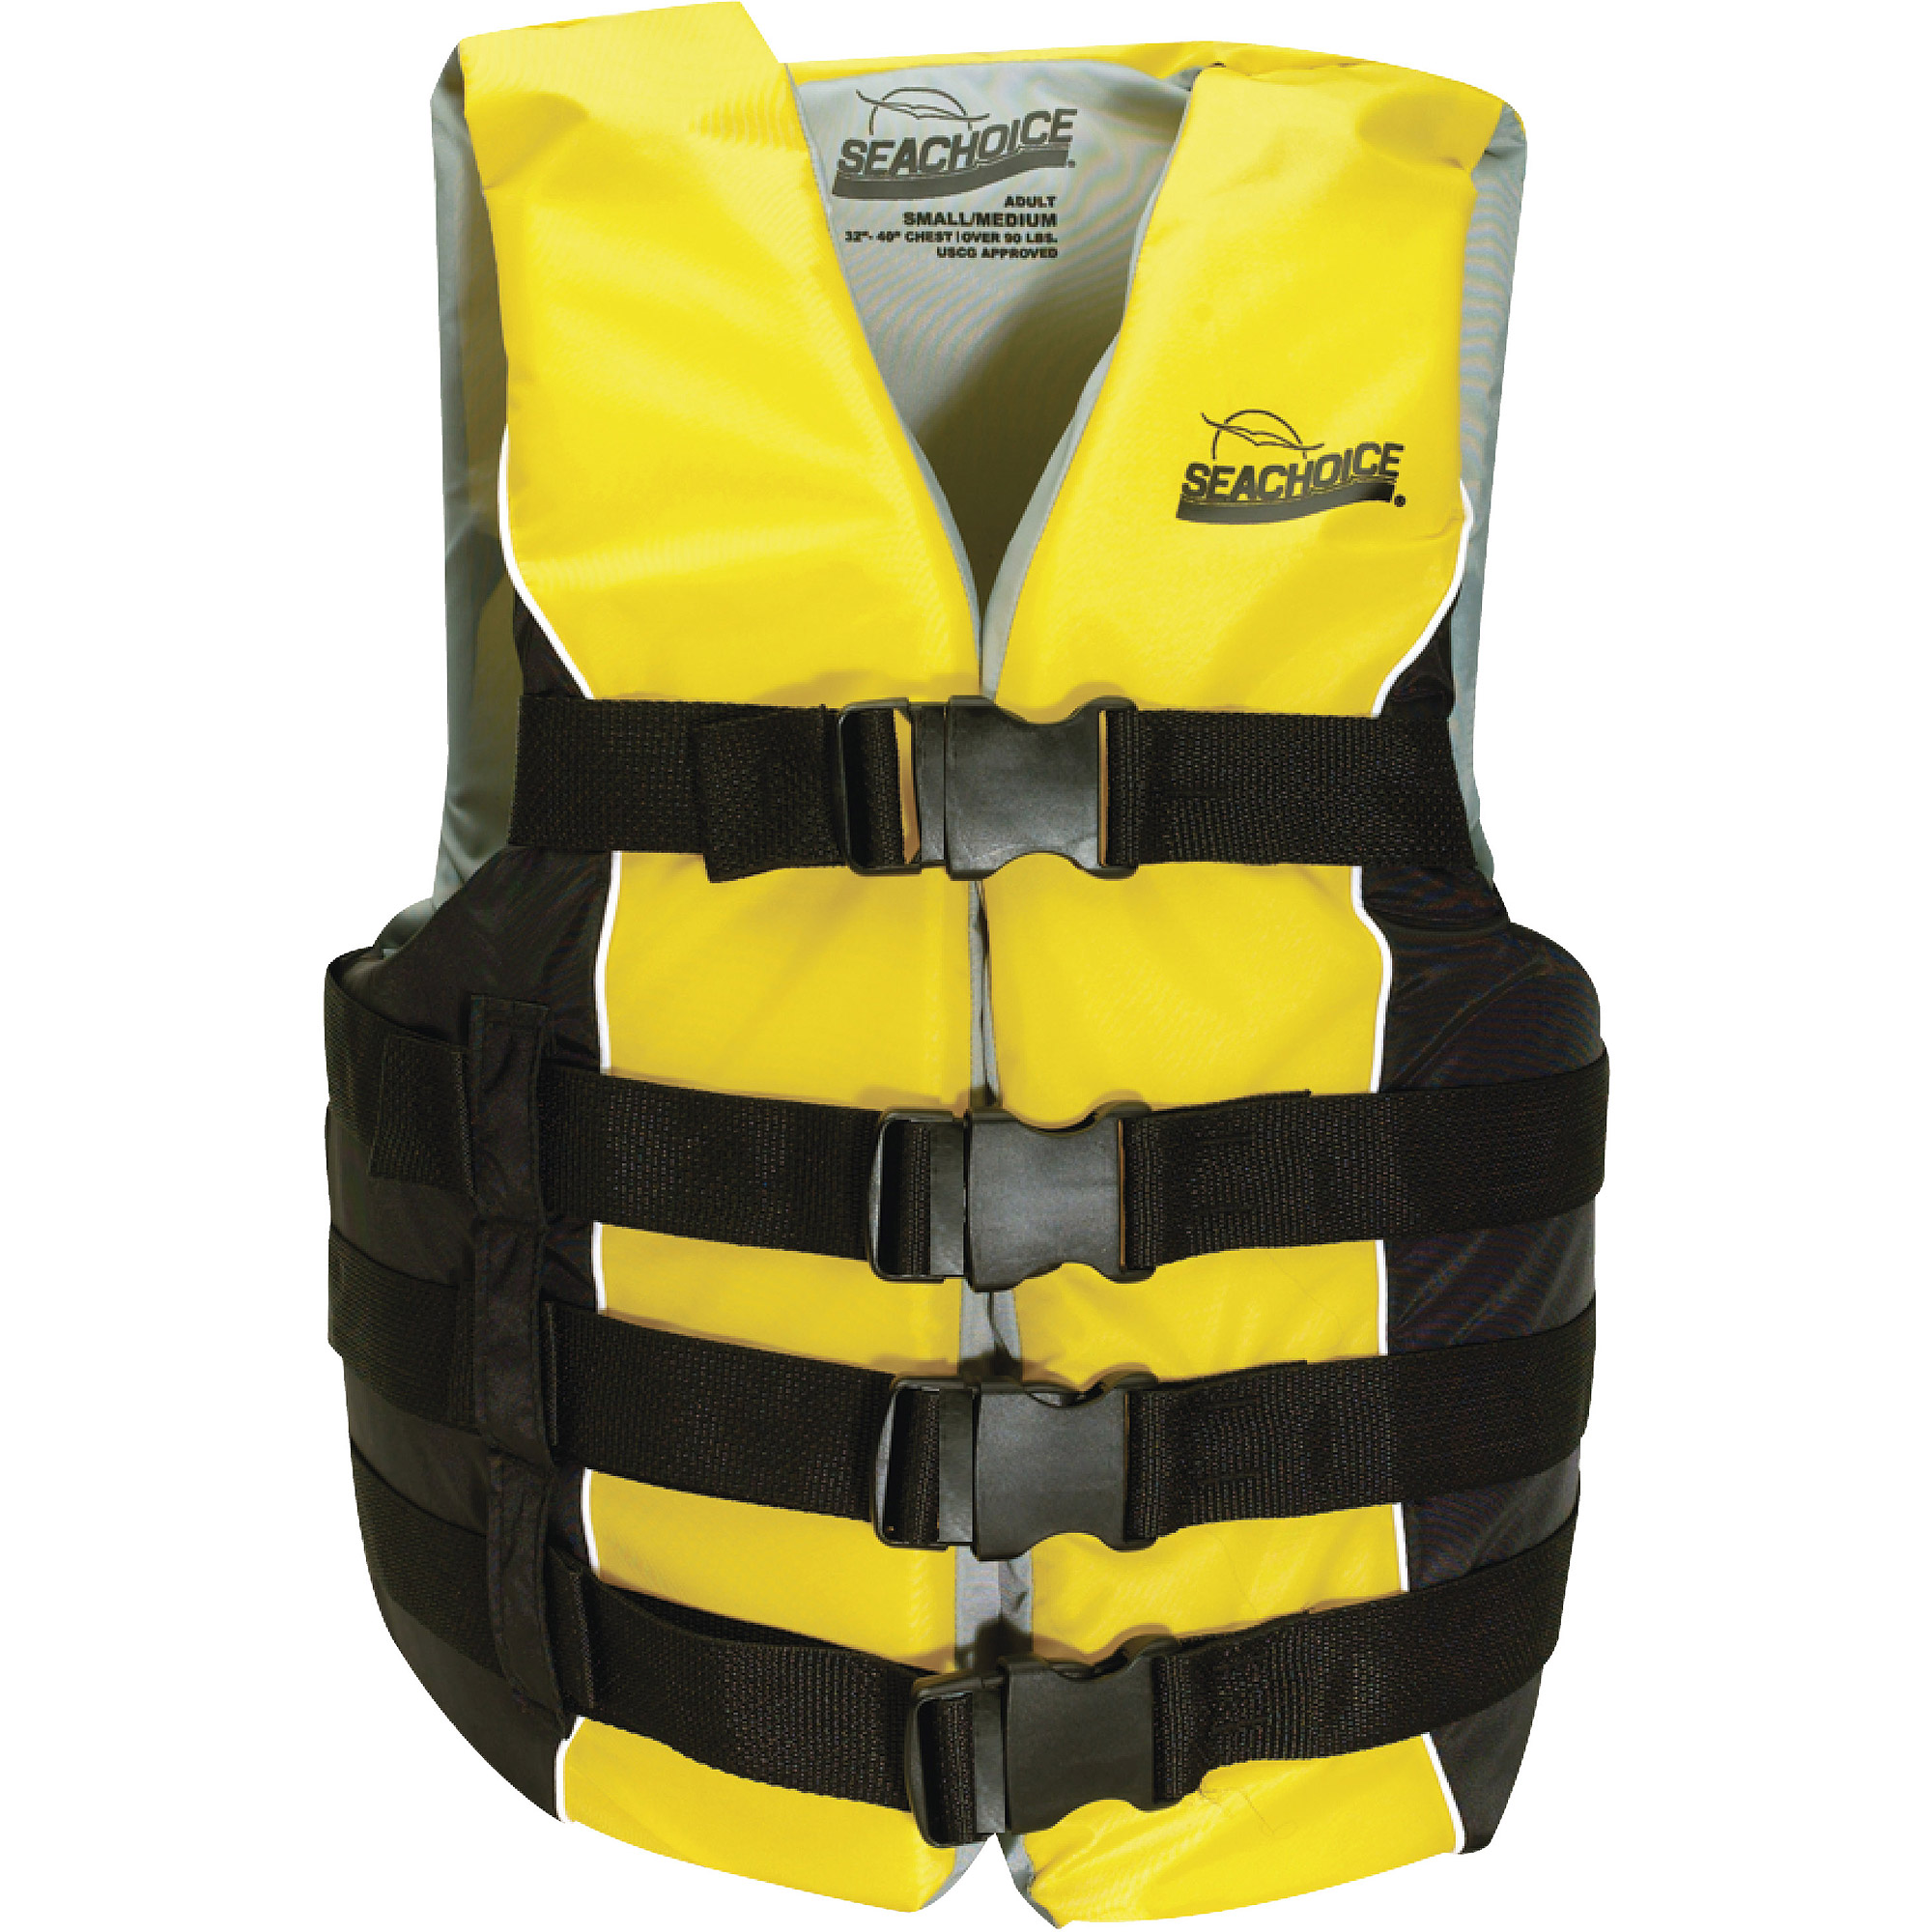 Seachoice Deluxe Type III 4-Belt Yellow/Black Adult Ski Vest for 90 lbs and Up